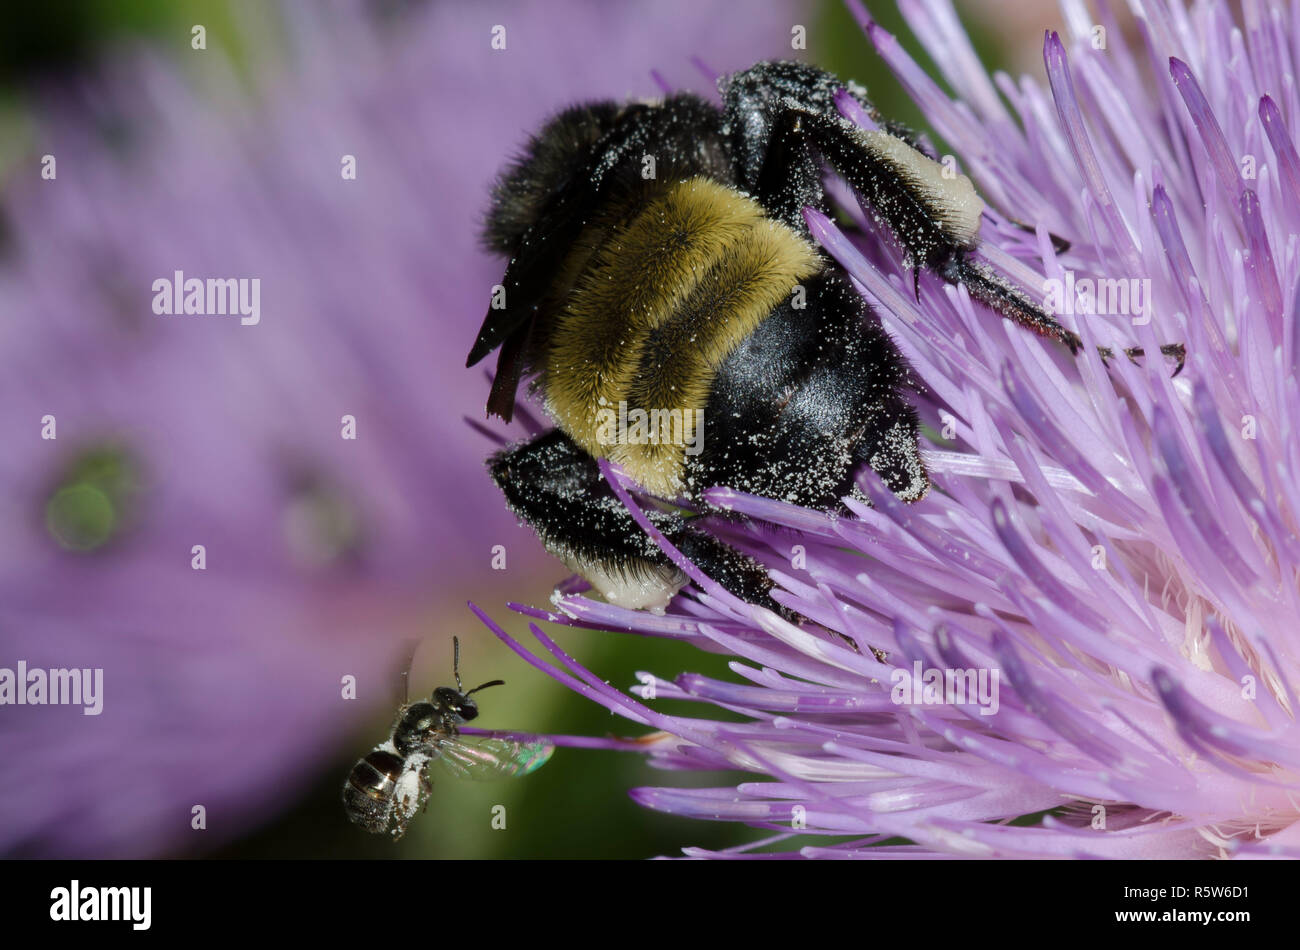 American Bumble Bee, Bombus pensylvanicus,  and Sweat Bee, Family Halictidae (in flight), on tall thistle, Cirsium altissimum - Stock Image